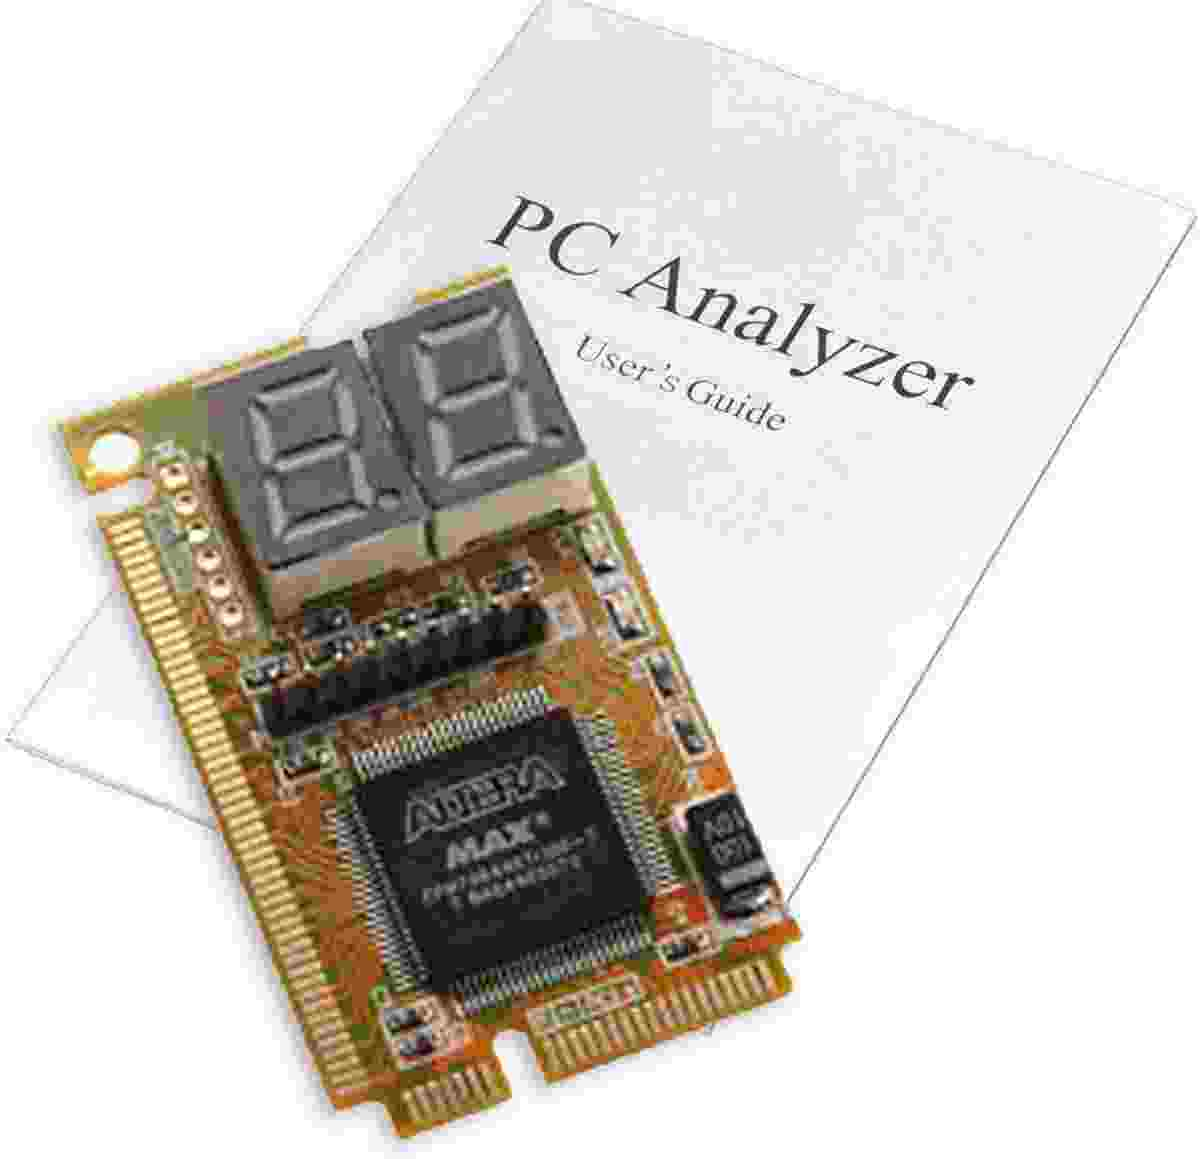 Debug Card 3in1 Mini PCI Pci-e Lpc with User Manual PC Laptop Notebook Combo MotherBoard Debug Card Analyzer Tester